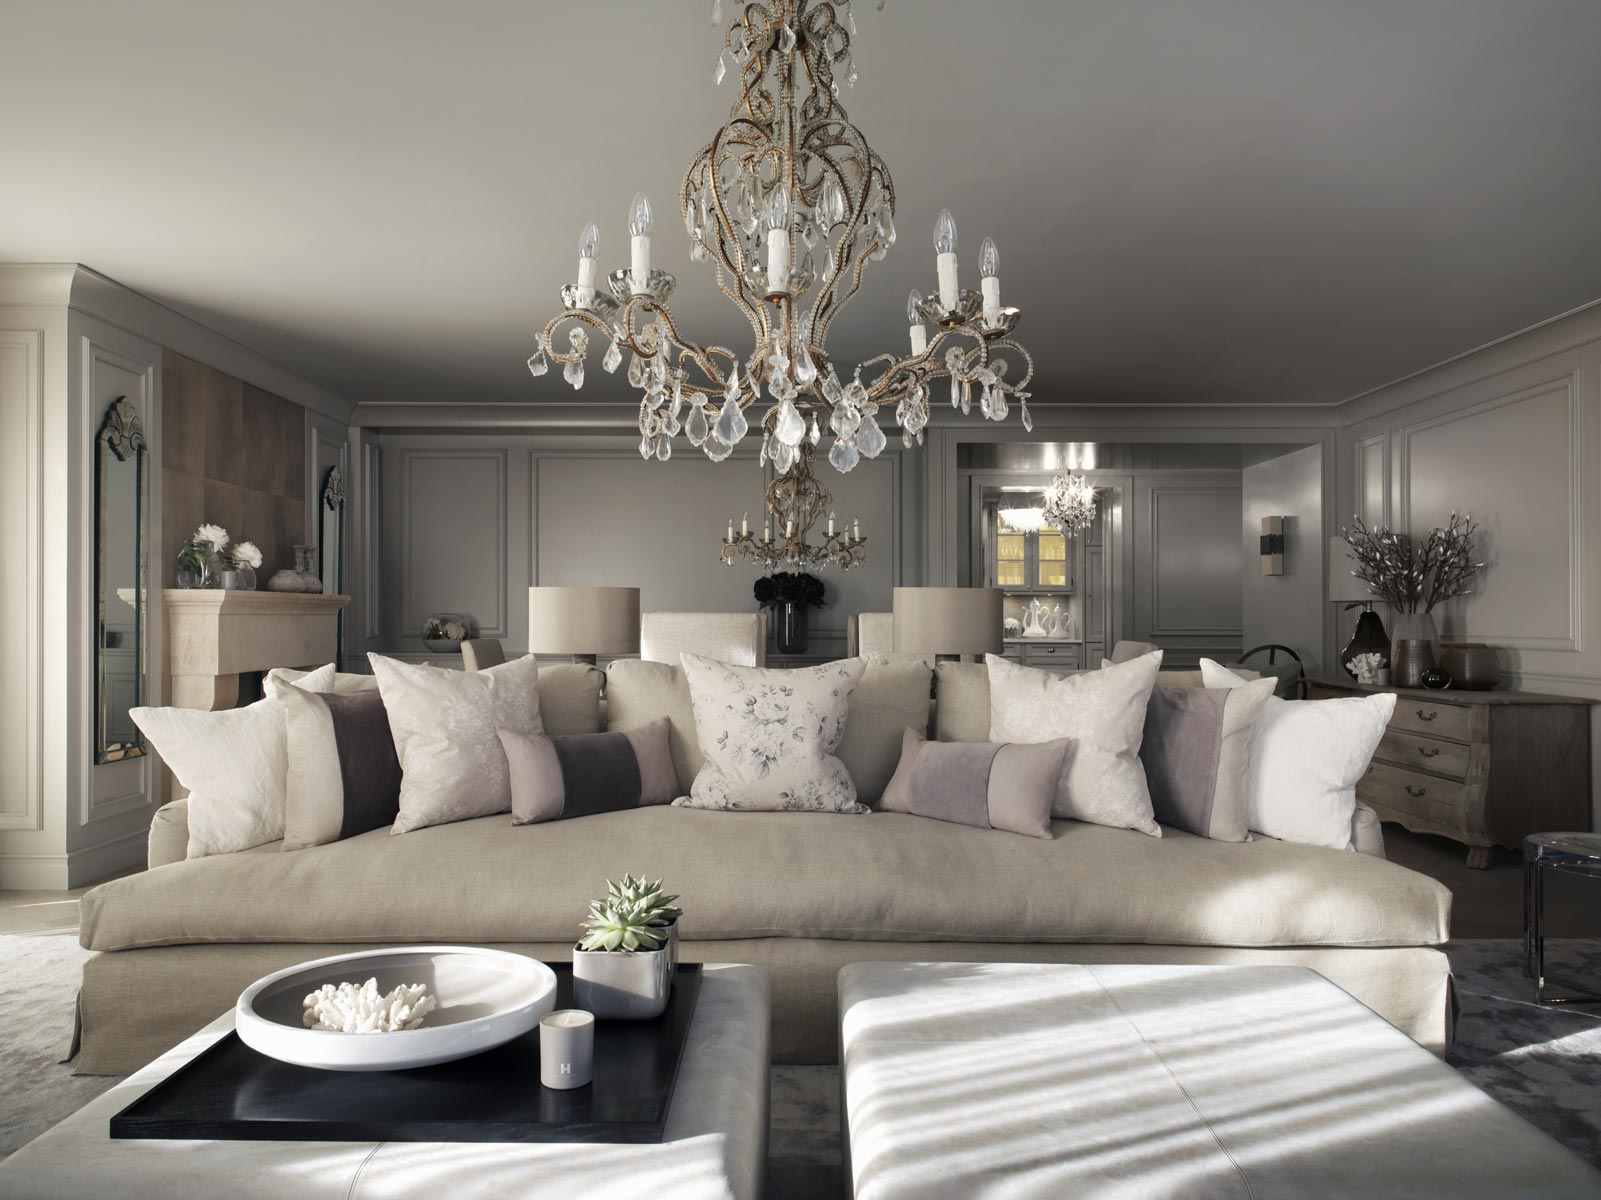 Top 10 kelly hoppen design ideas - Gorgeous home decoration inspiration ideas for you ...